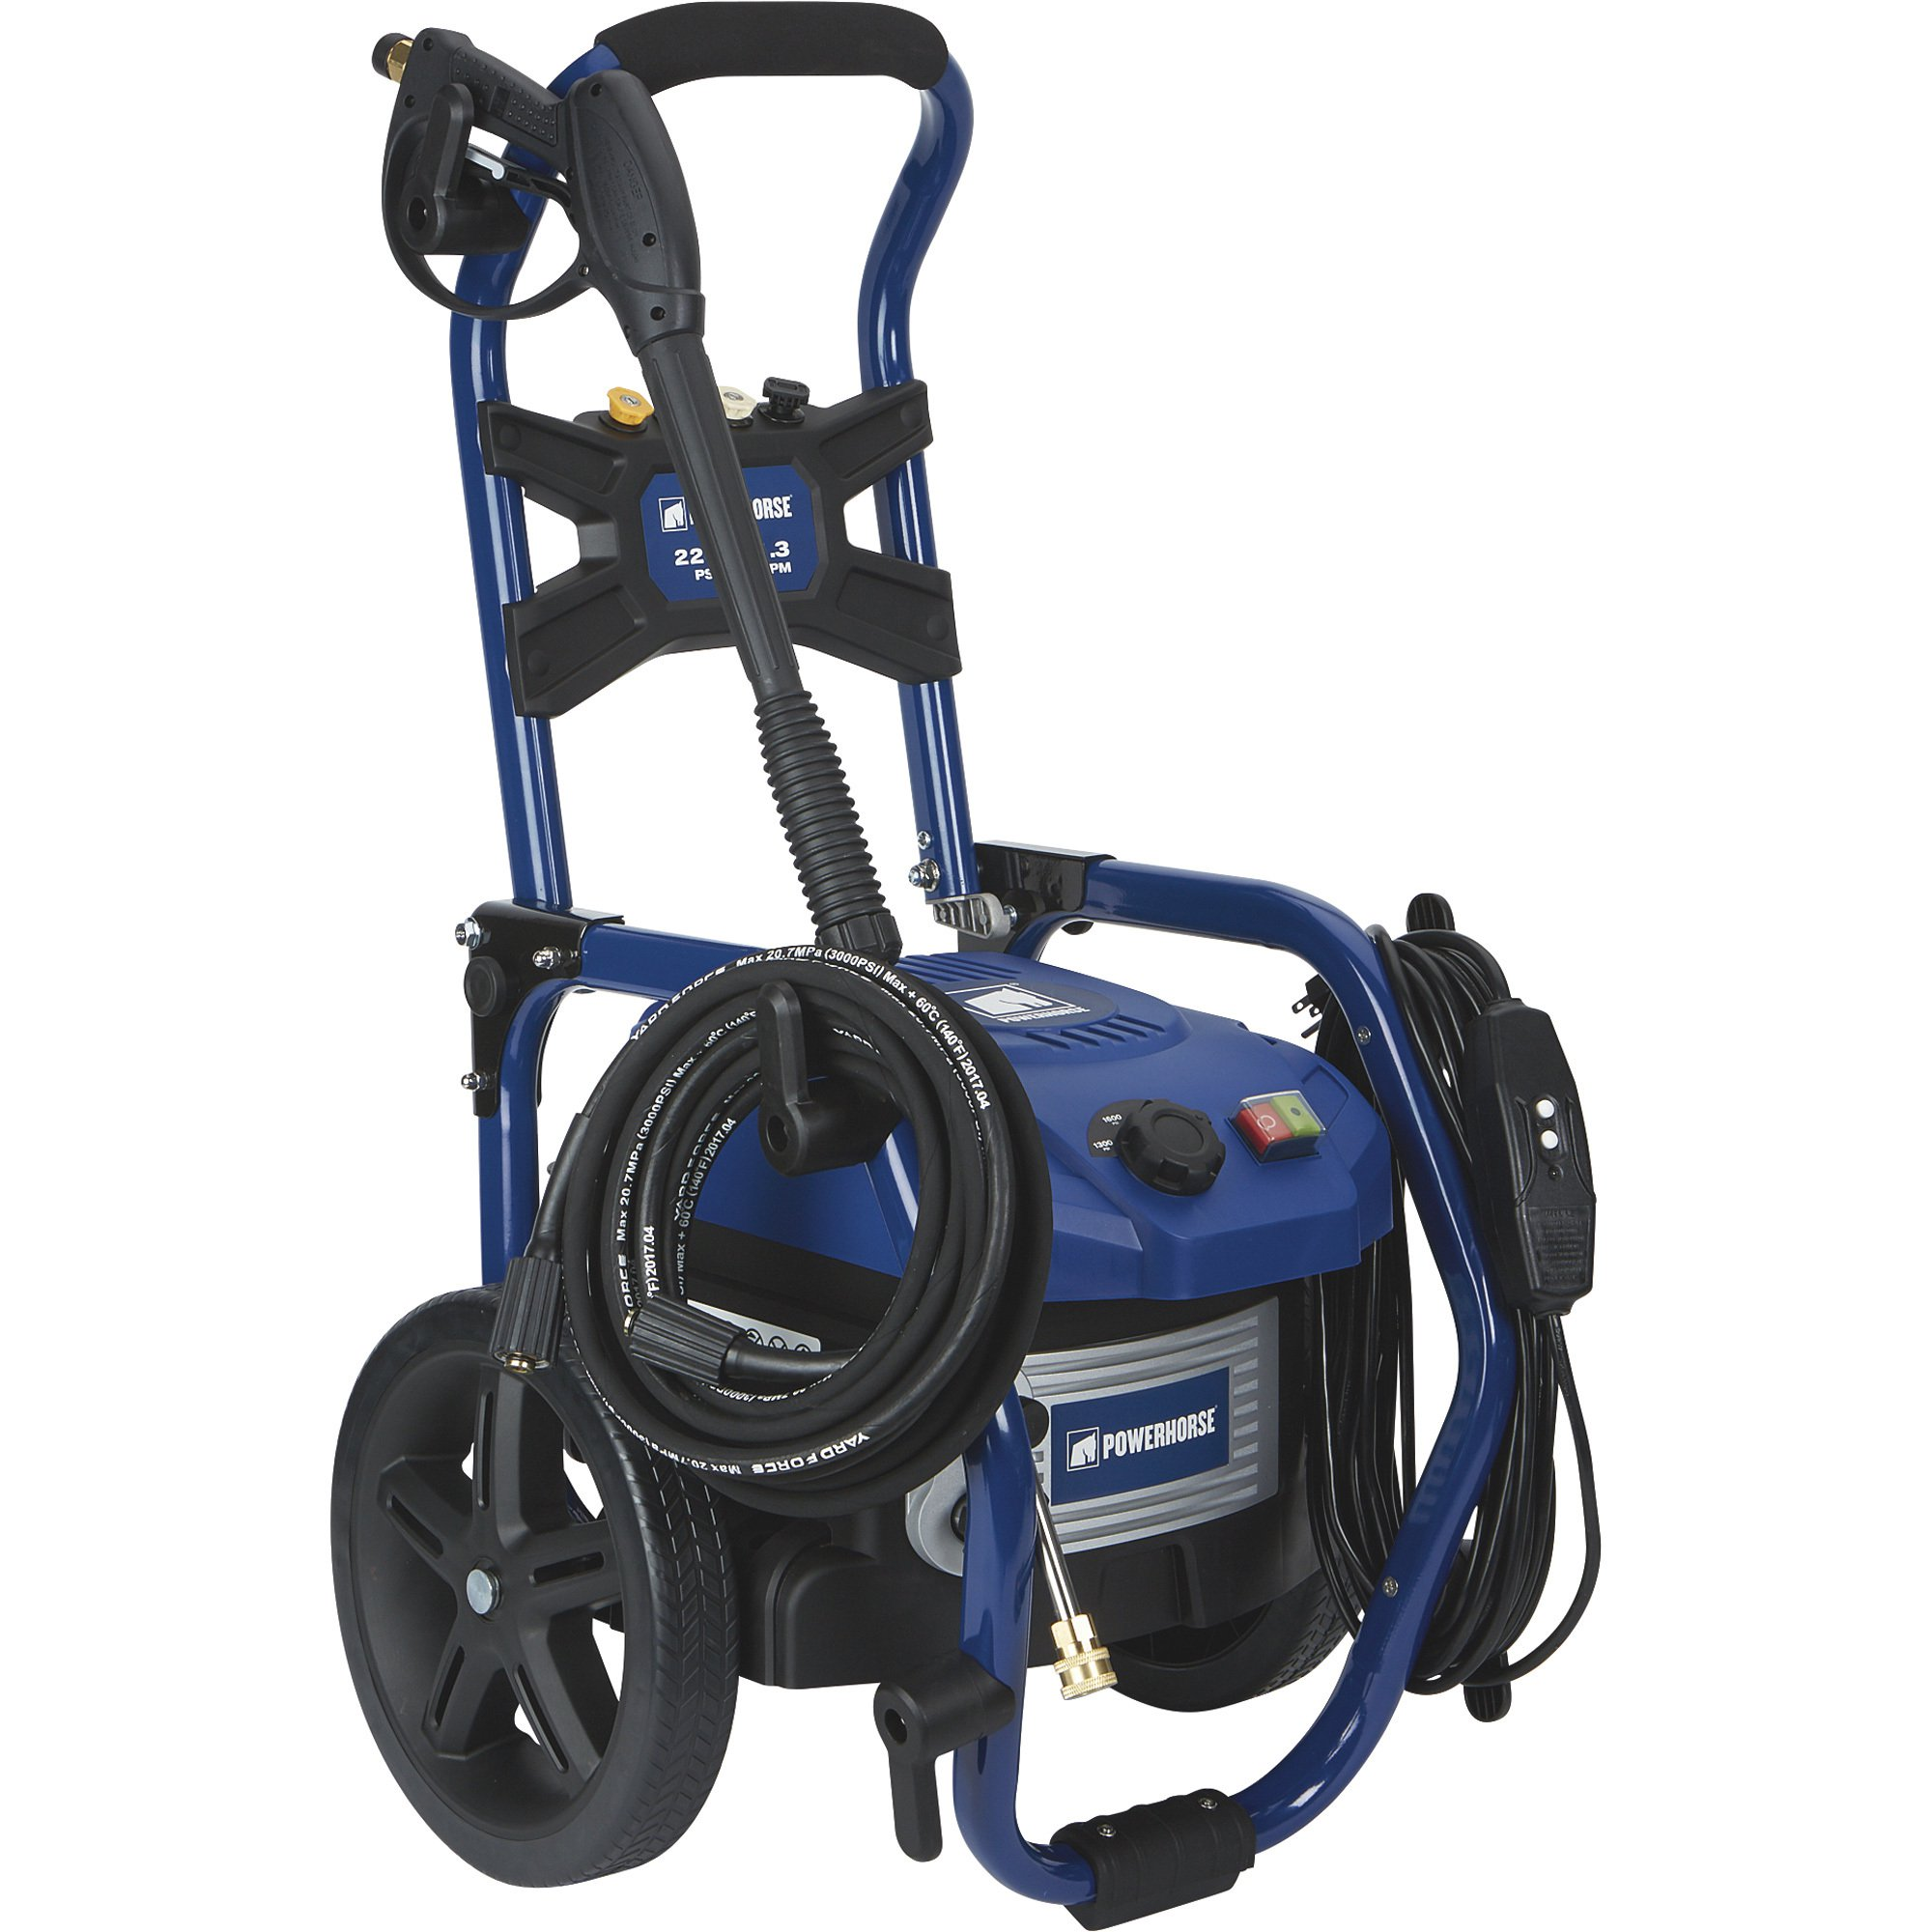 Powerhorse 157065 Brushless Electric Pressure Washer - 1.3 GPM, 2200 PSI